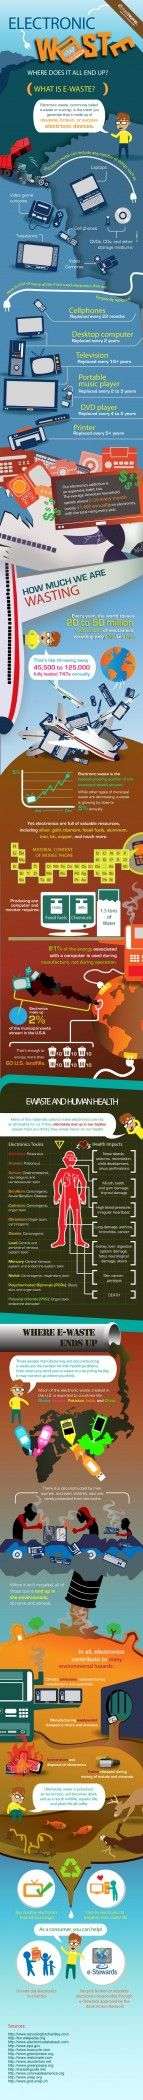 Electronic Waste Where Does it All End Up [Infographic] Antimony, arsenic, Barium, berylium, Cad ...